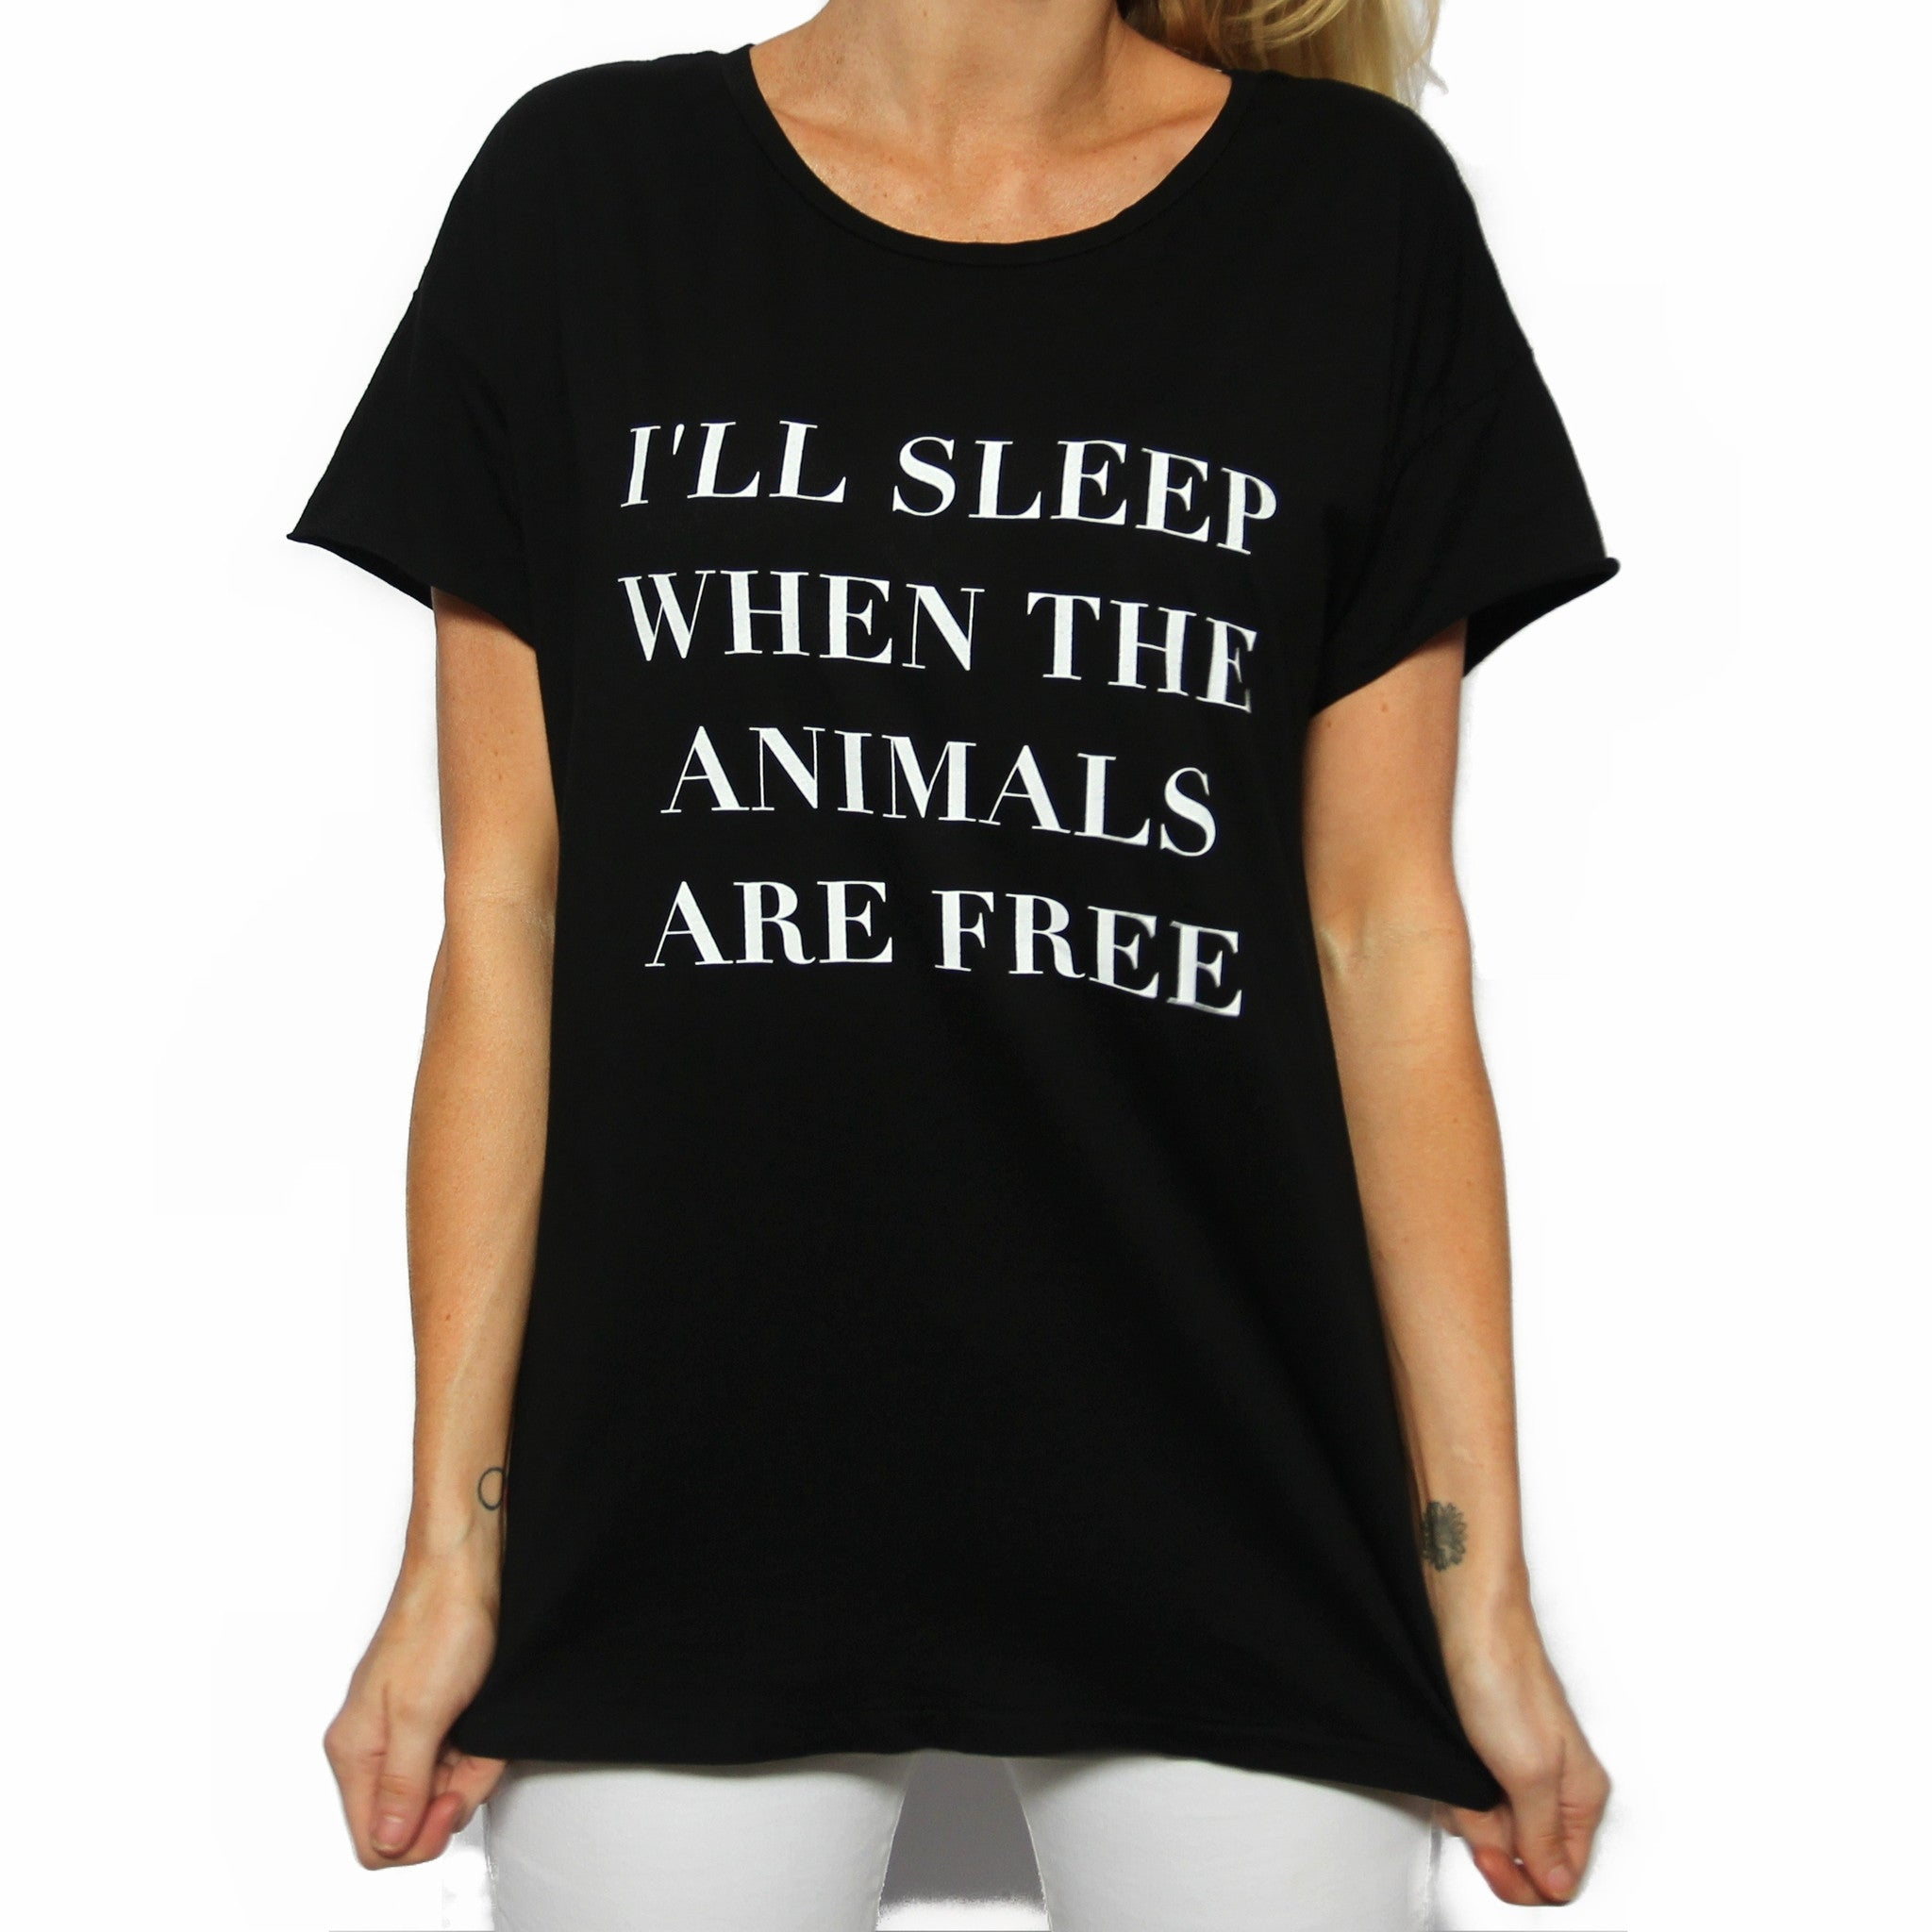 When The Animals Are Free Rocker Tee